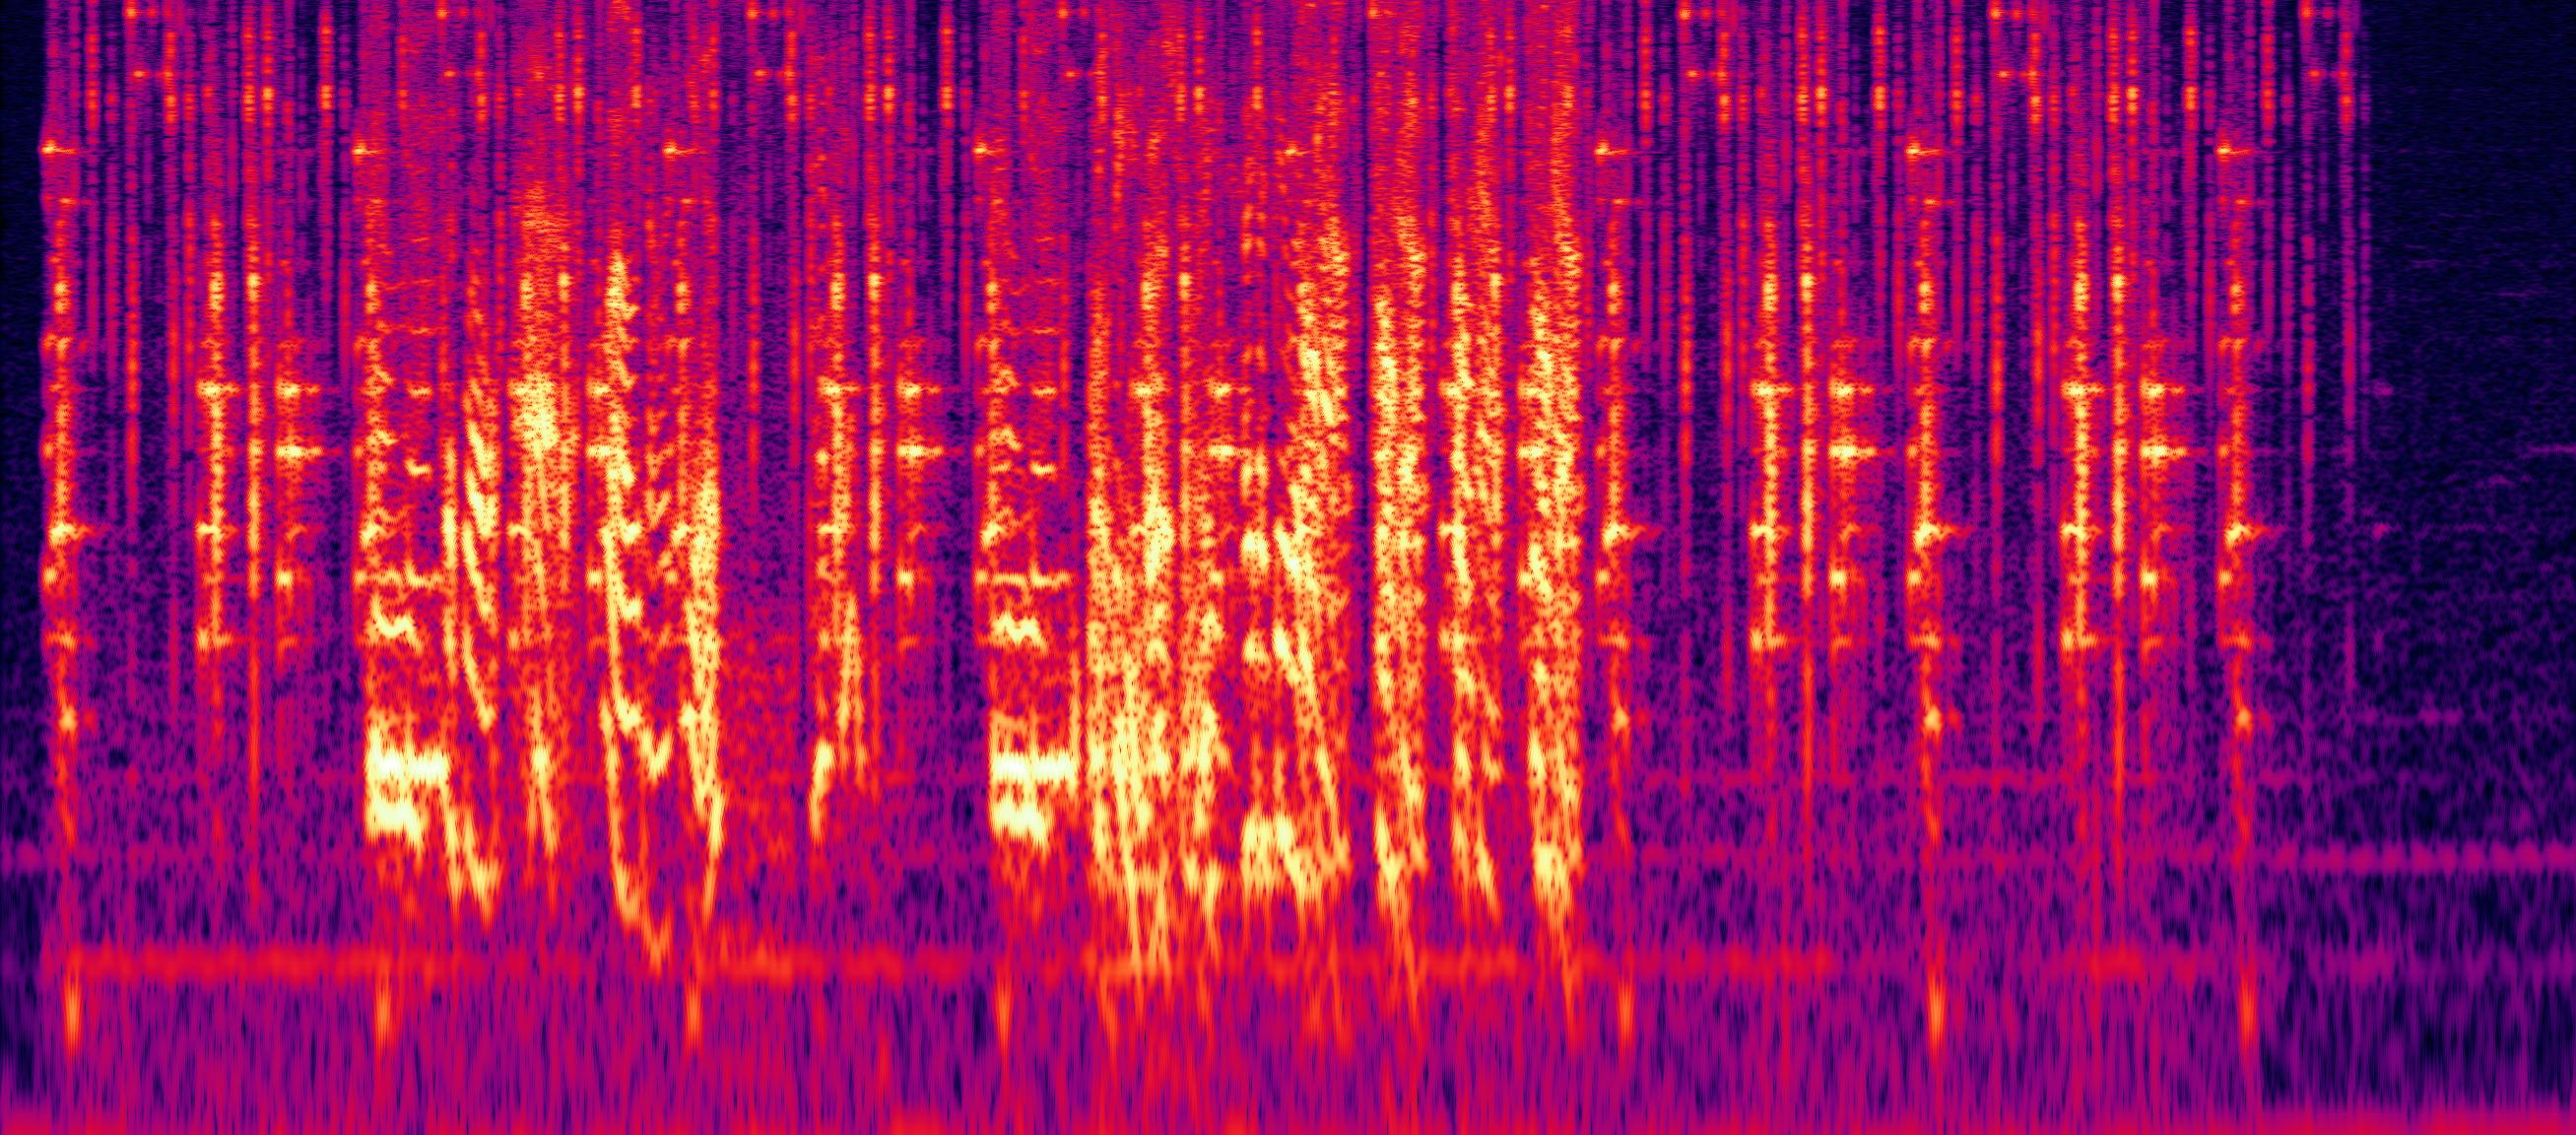 Talk Out - Spectrogram.jpg